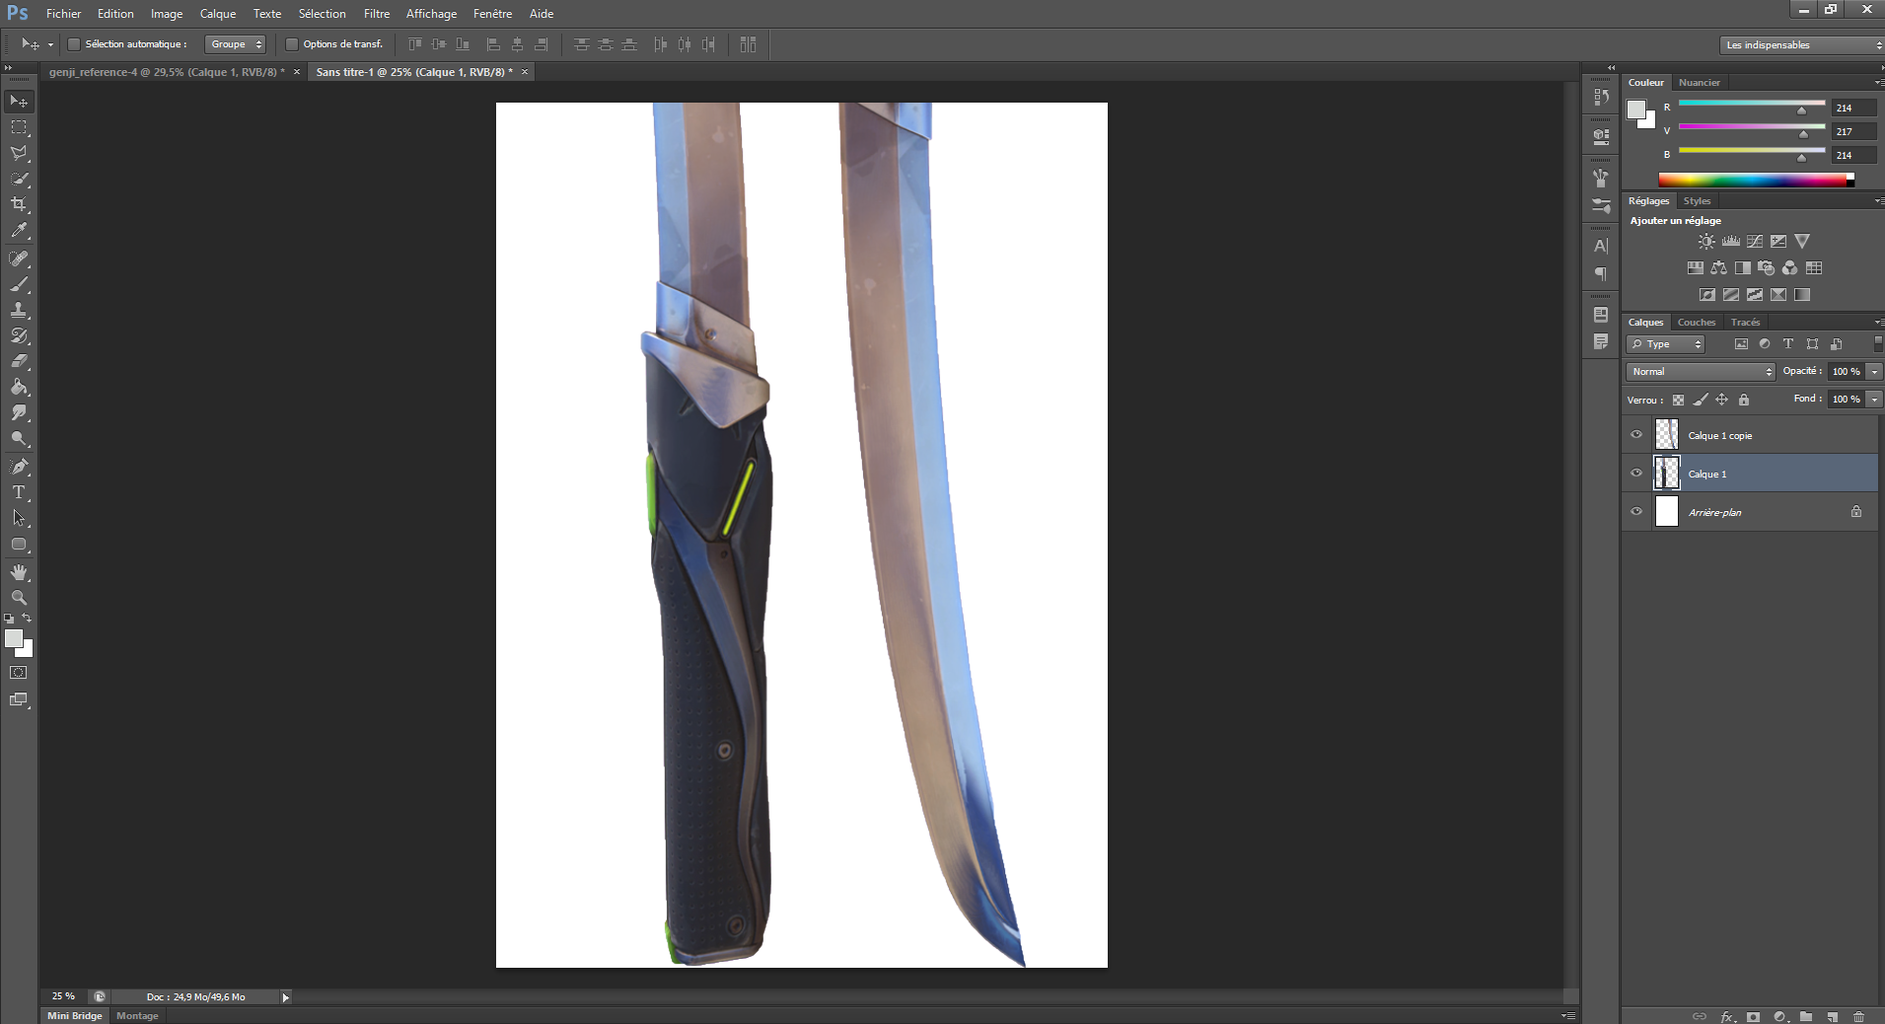 Use the Reference Kit to Print  3 Times (A4 Format) Models for the Two Blades